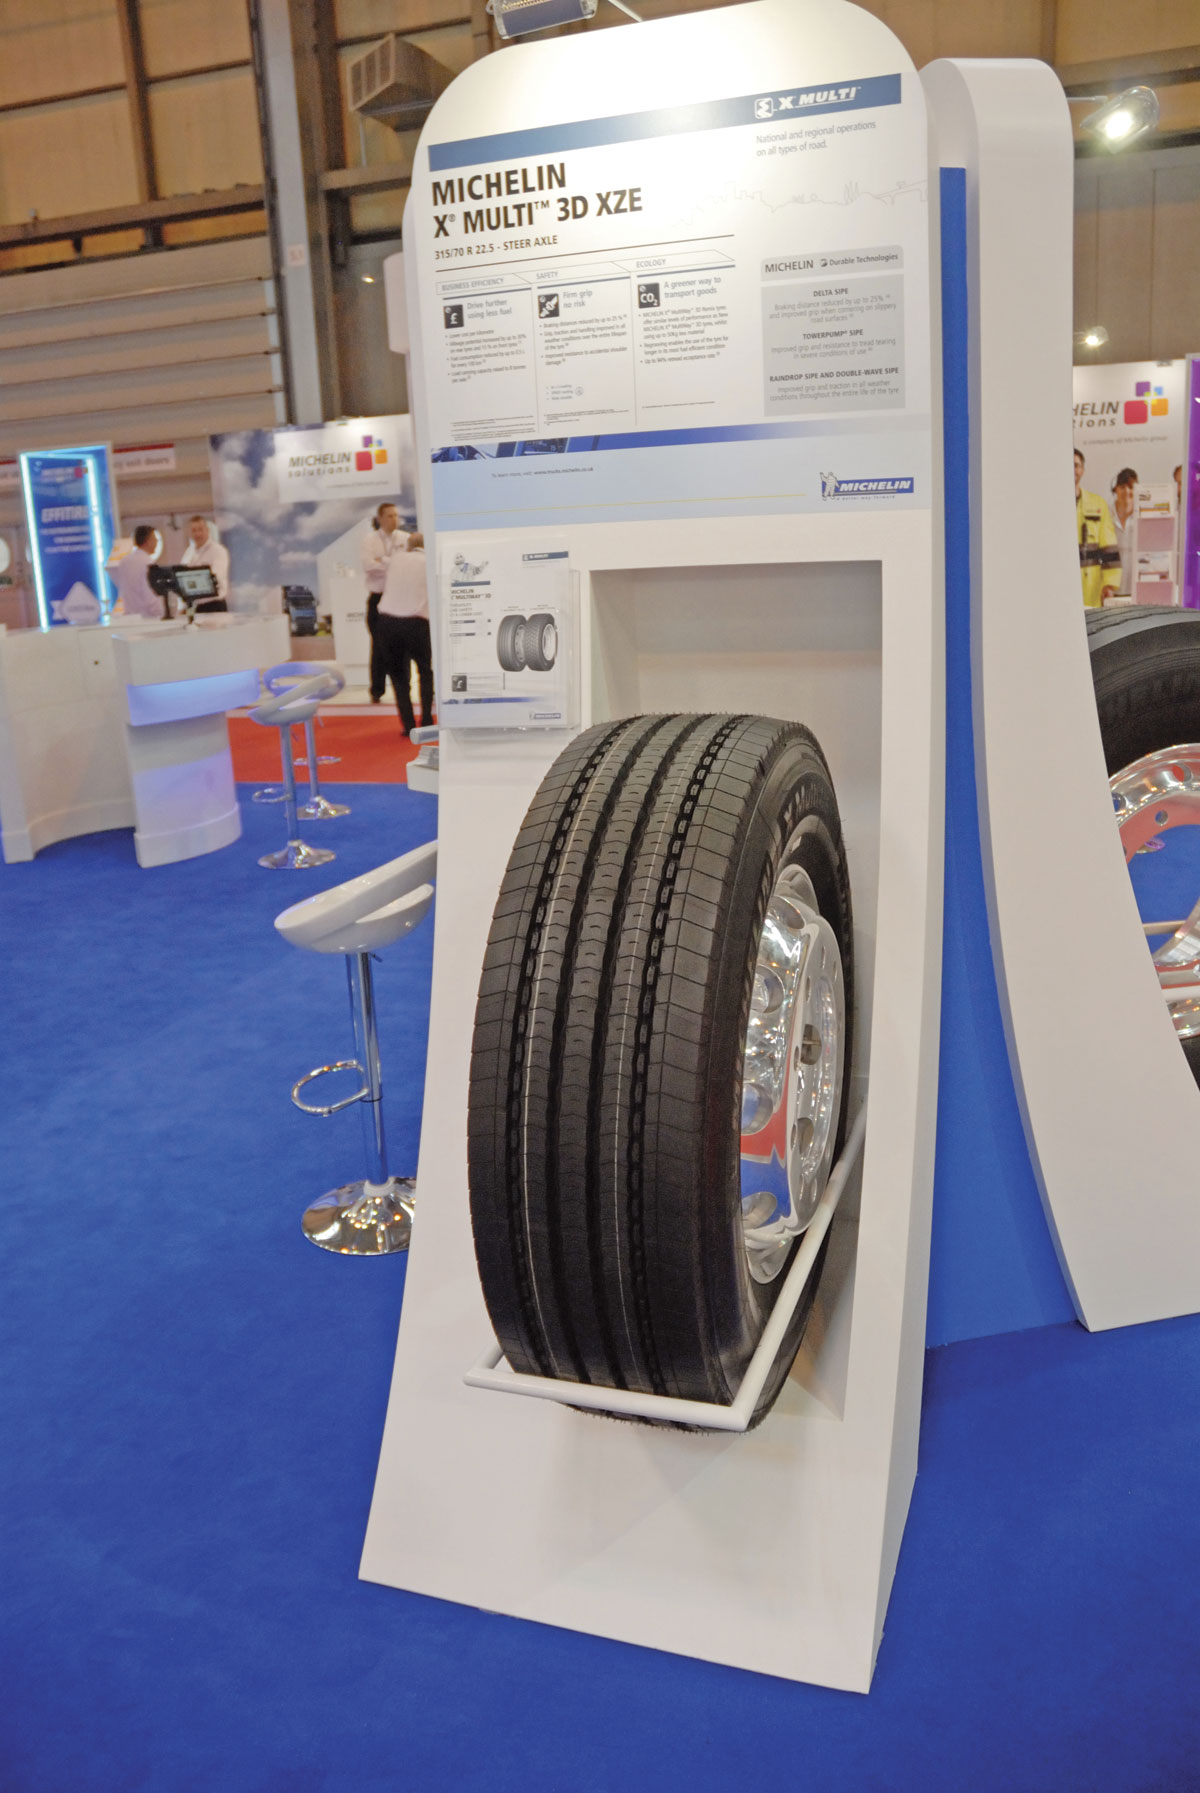 Michelin's X Multi 3D XZE